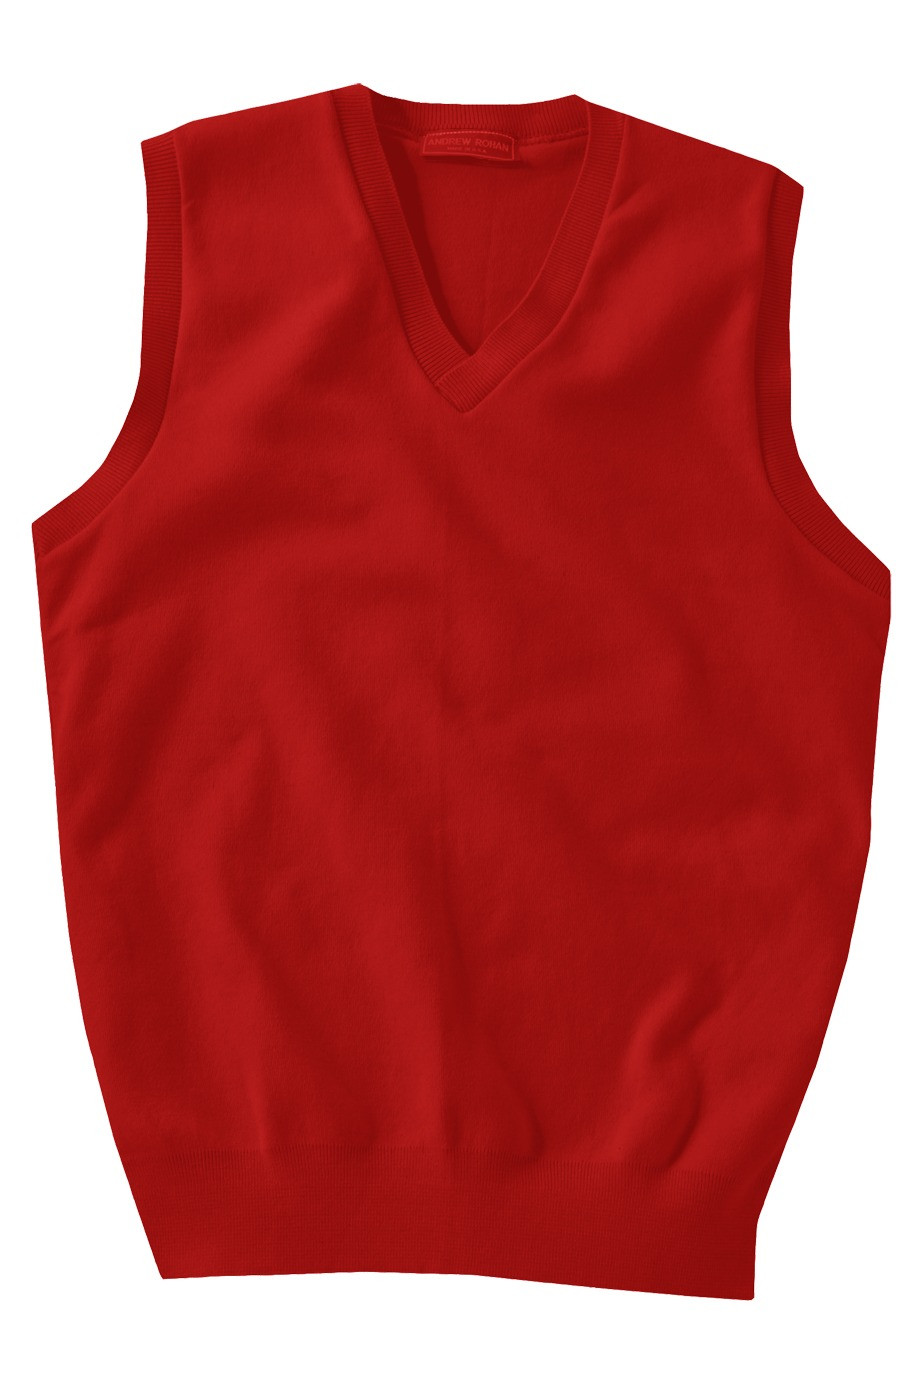 Edwards Garment 701 - Men's Cotton Cashmere V-Neck Vest